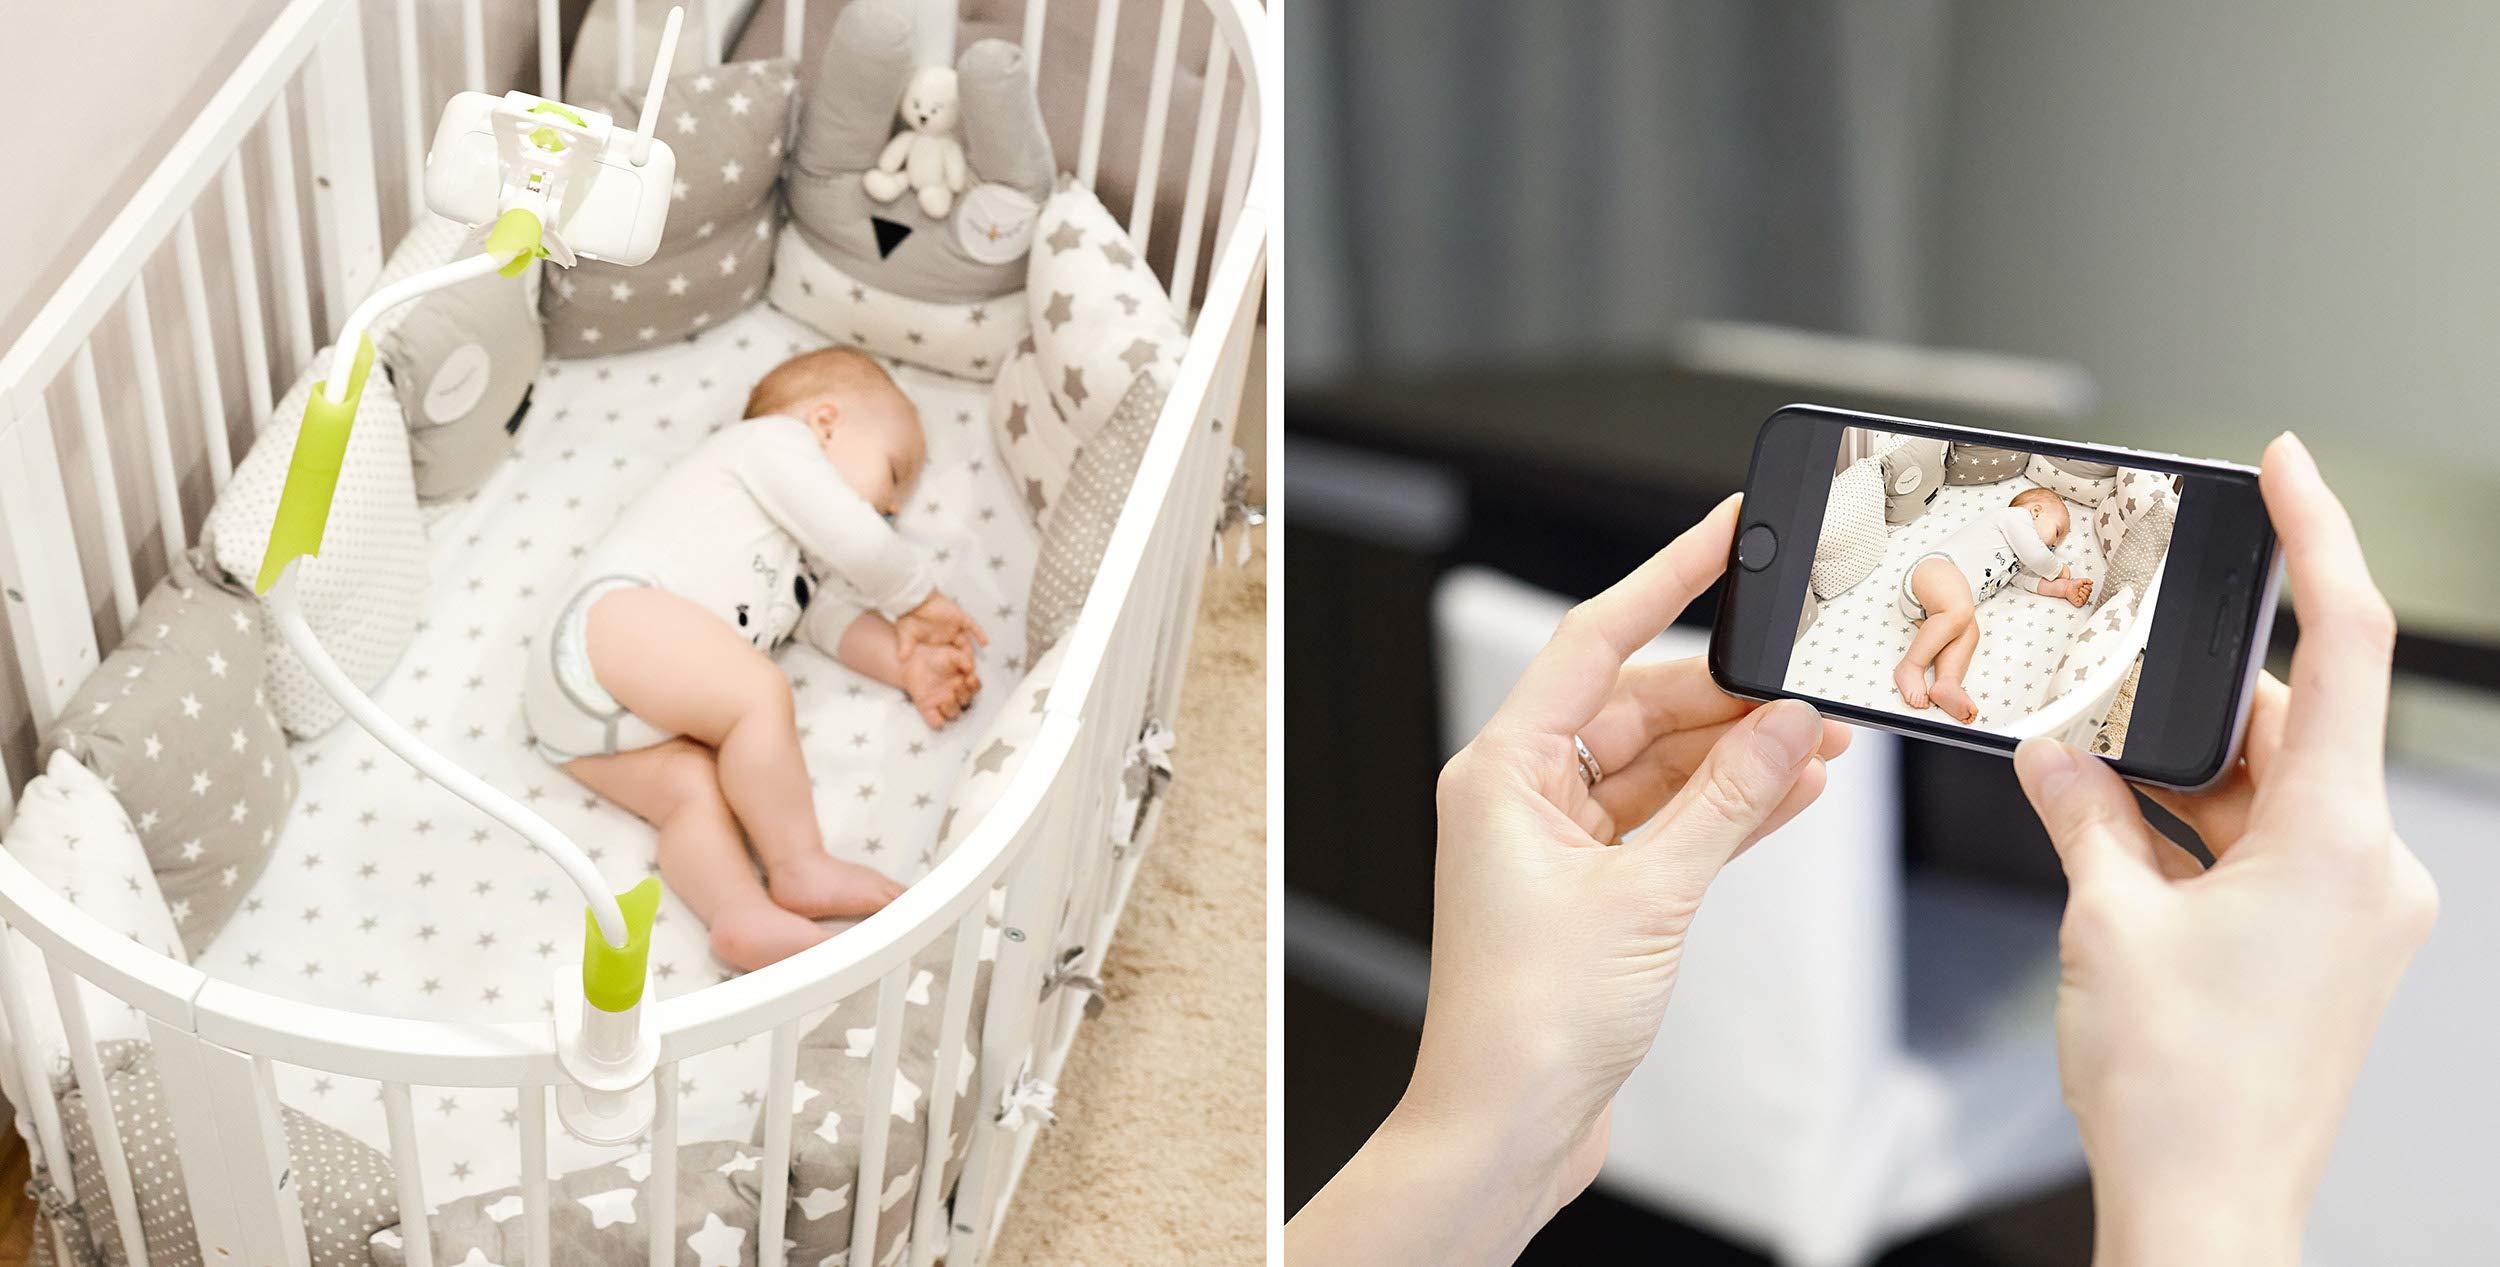 Baby Monitor Mount - Universal Baby Monitor Holder for Crib or Wall Shelf - Strong Clamp Bracket & Flexible Adjustable Arm - Compatible with Most Infant Video Cameras by Kenley (Image #4)